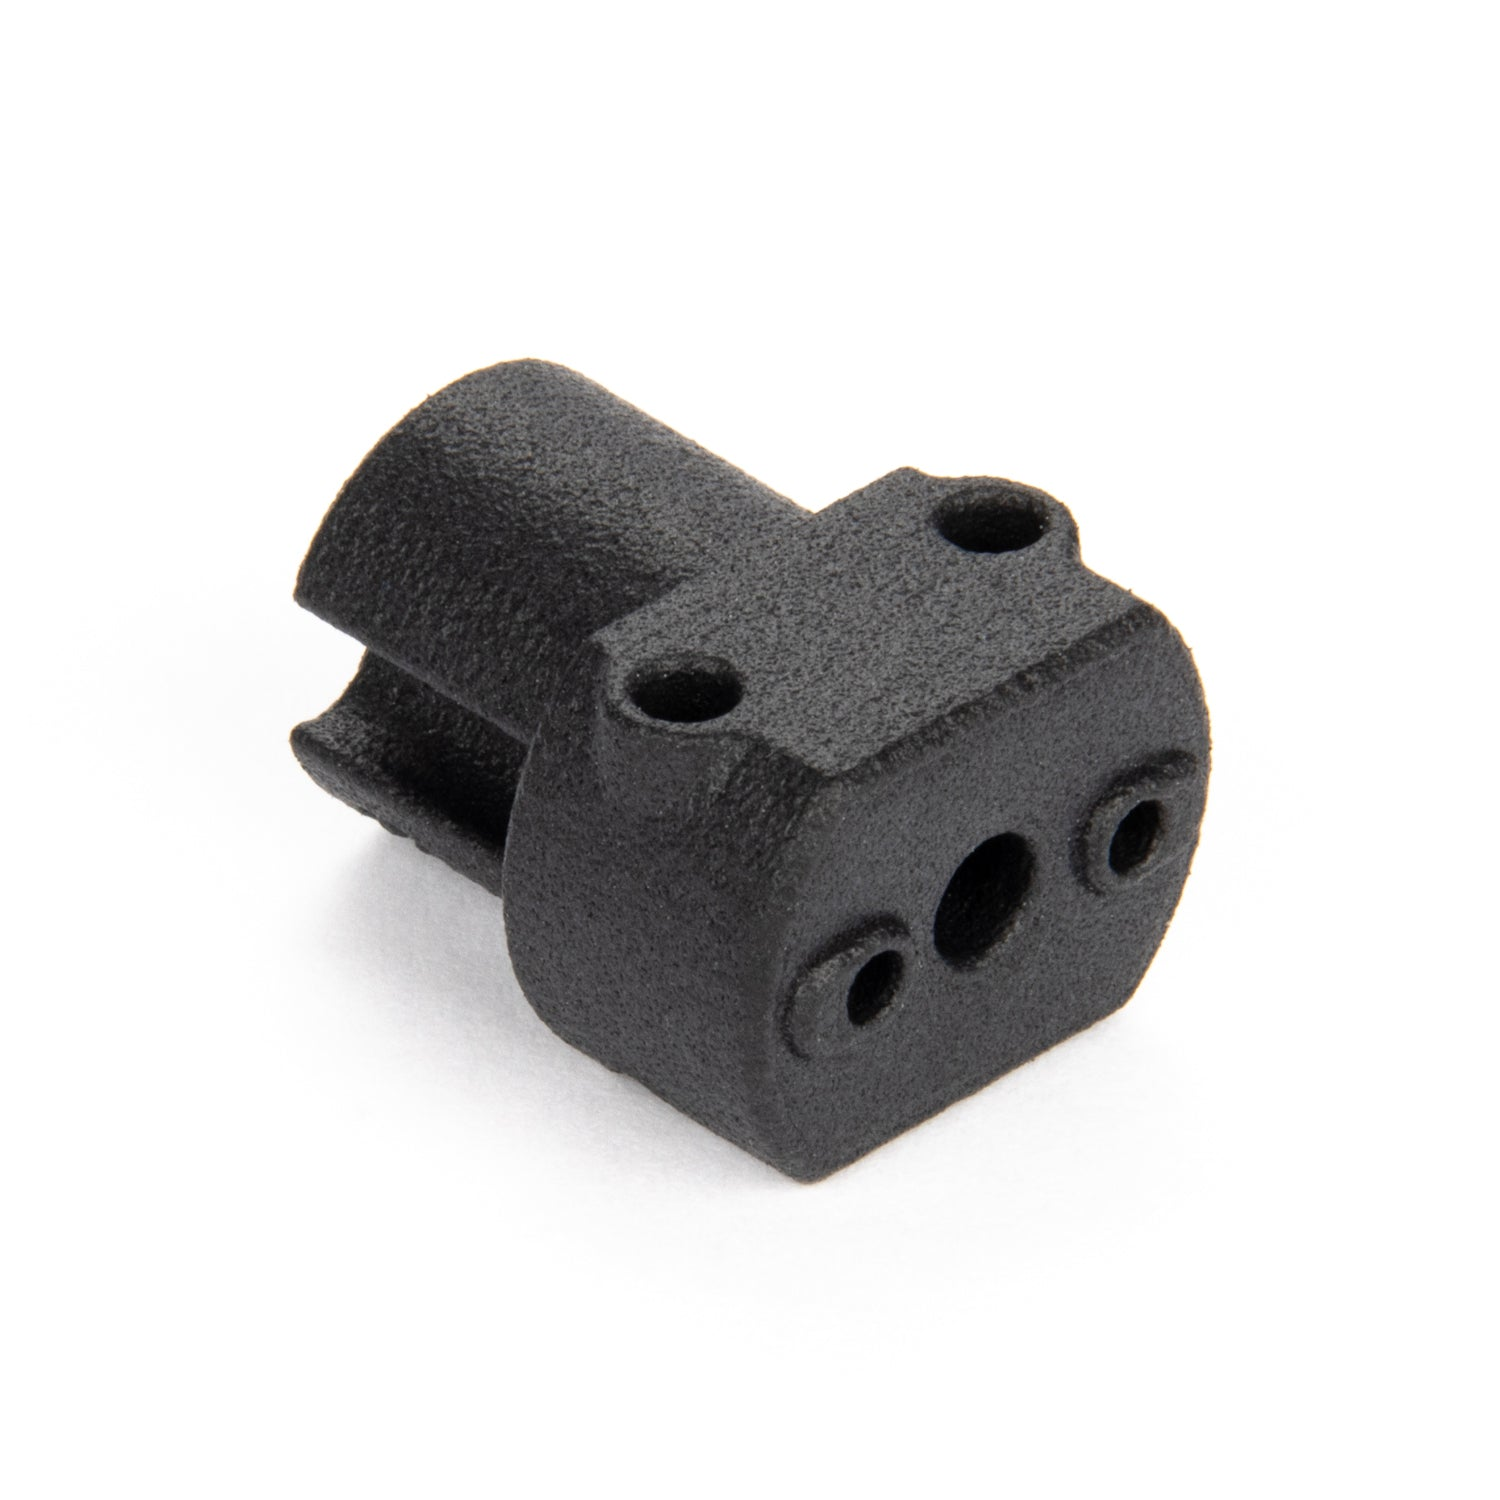 DDX Hotend Adapter For Mosquito® (Horizontal)